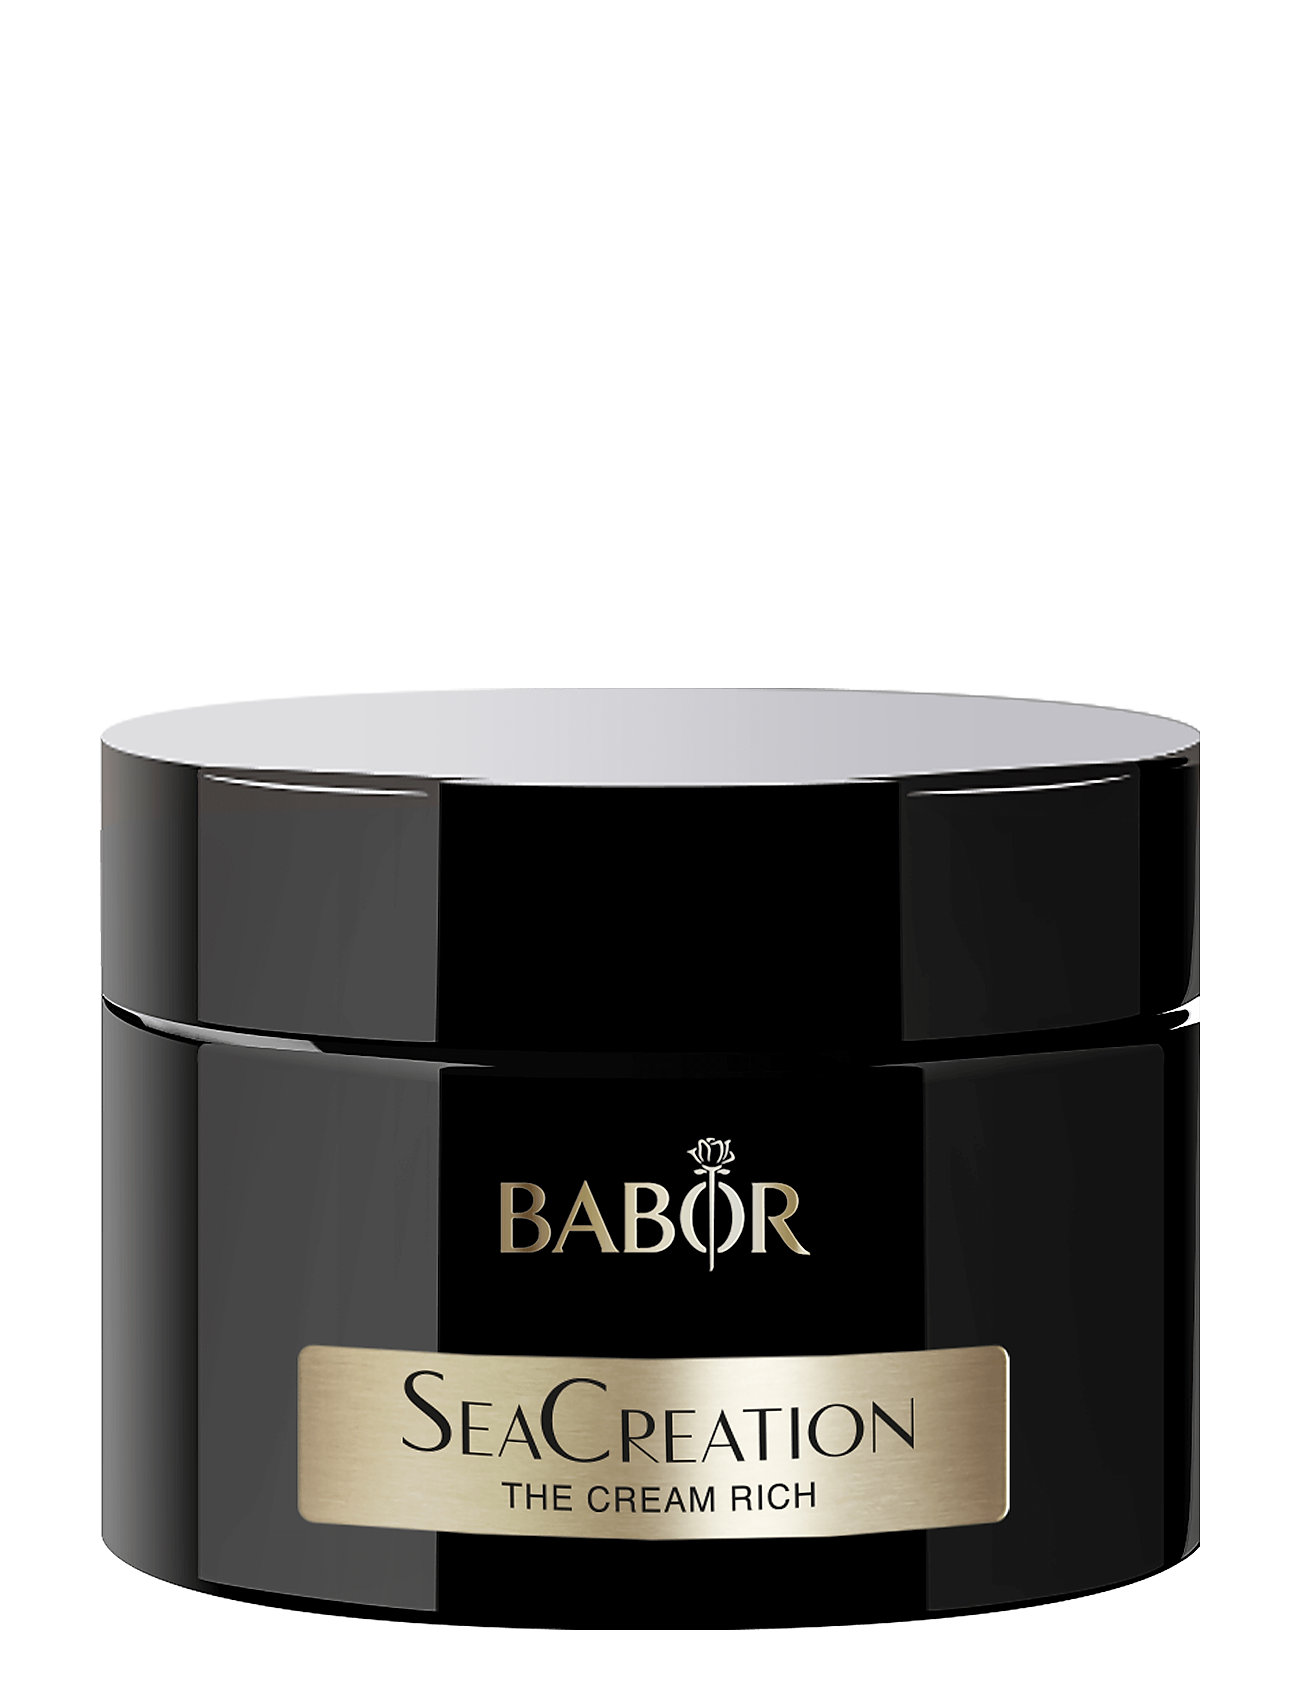 Image of The Cream Rich Beauty WOMEN Skin Care Face Day Creams Nude Babor (3105945849)